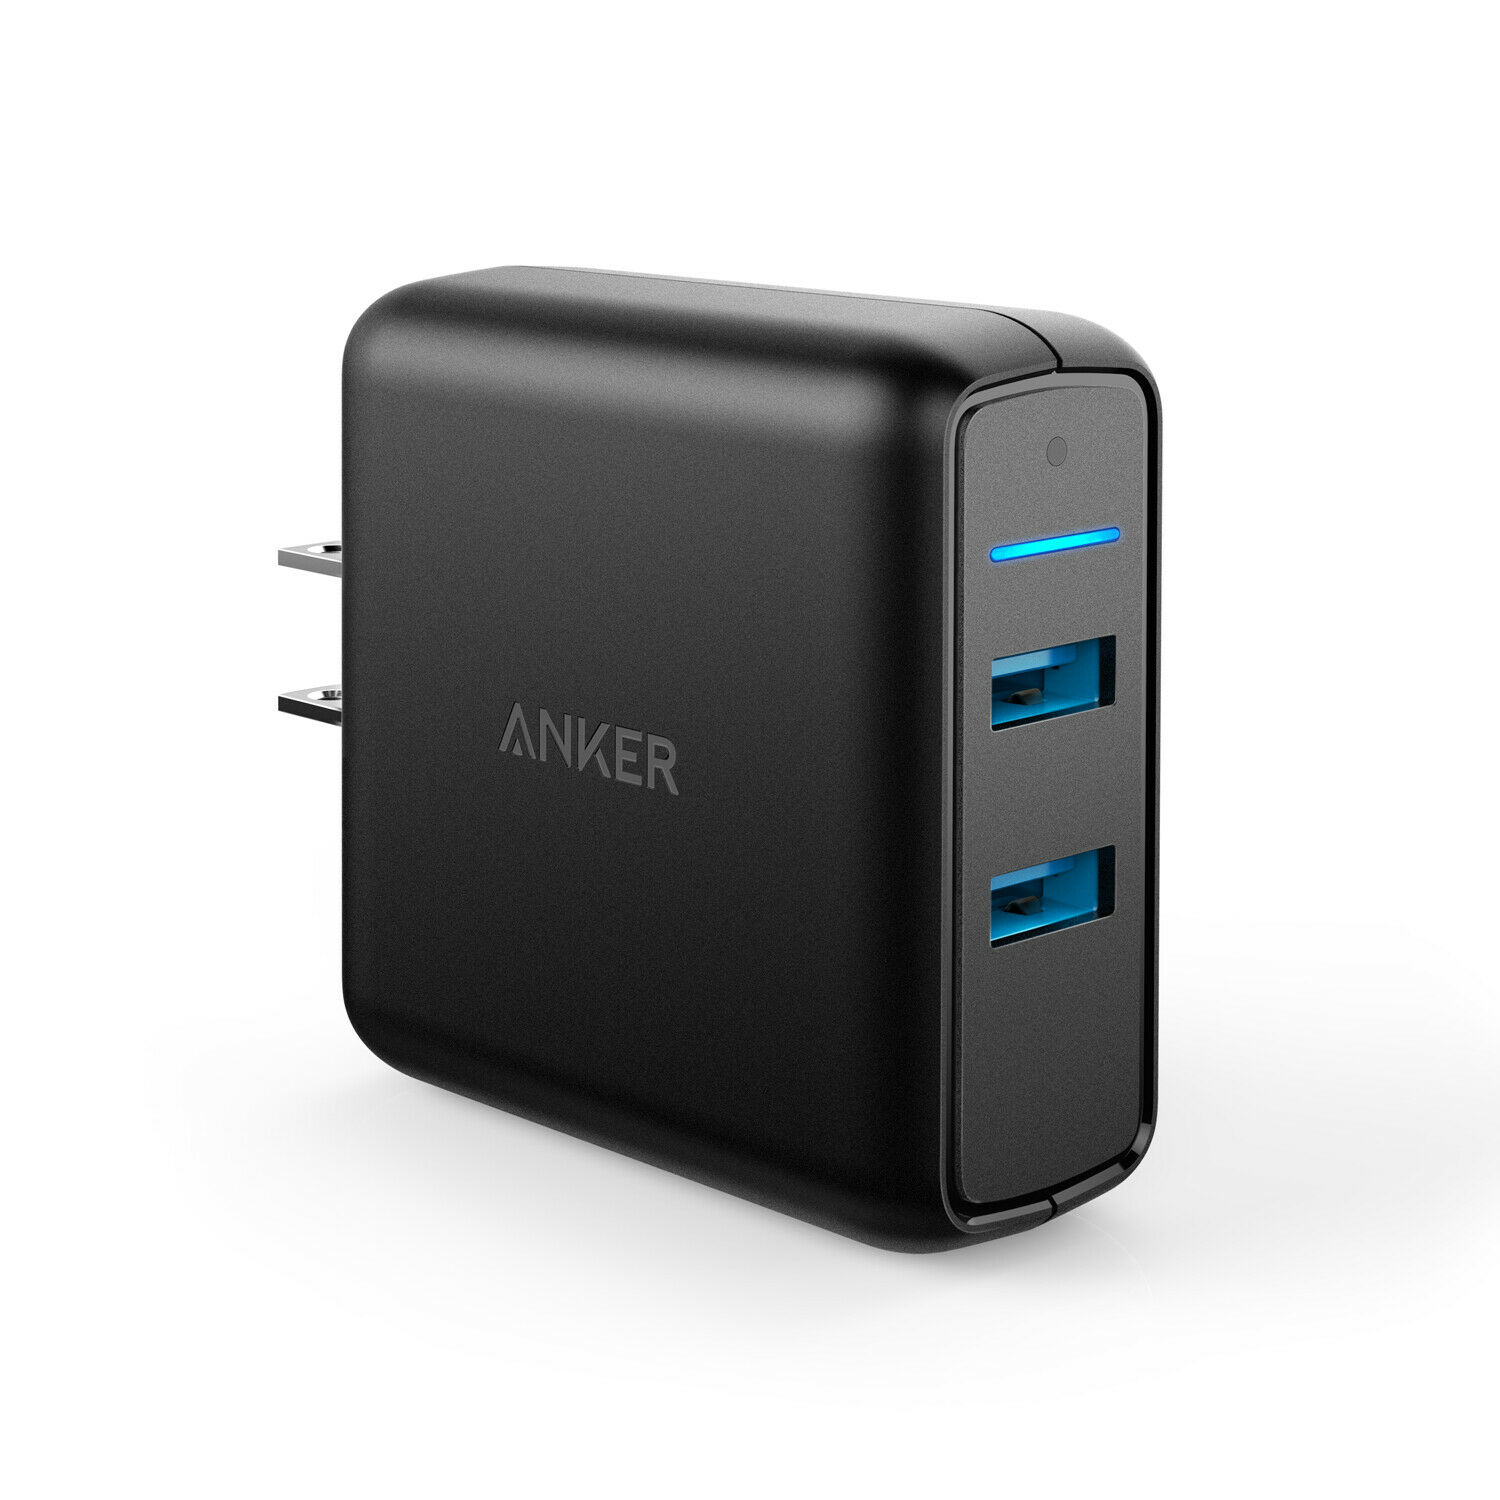 Anker Quick Charge 3.0 Dual USB PowerPort Speed 2 Wall Charg